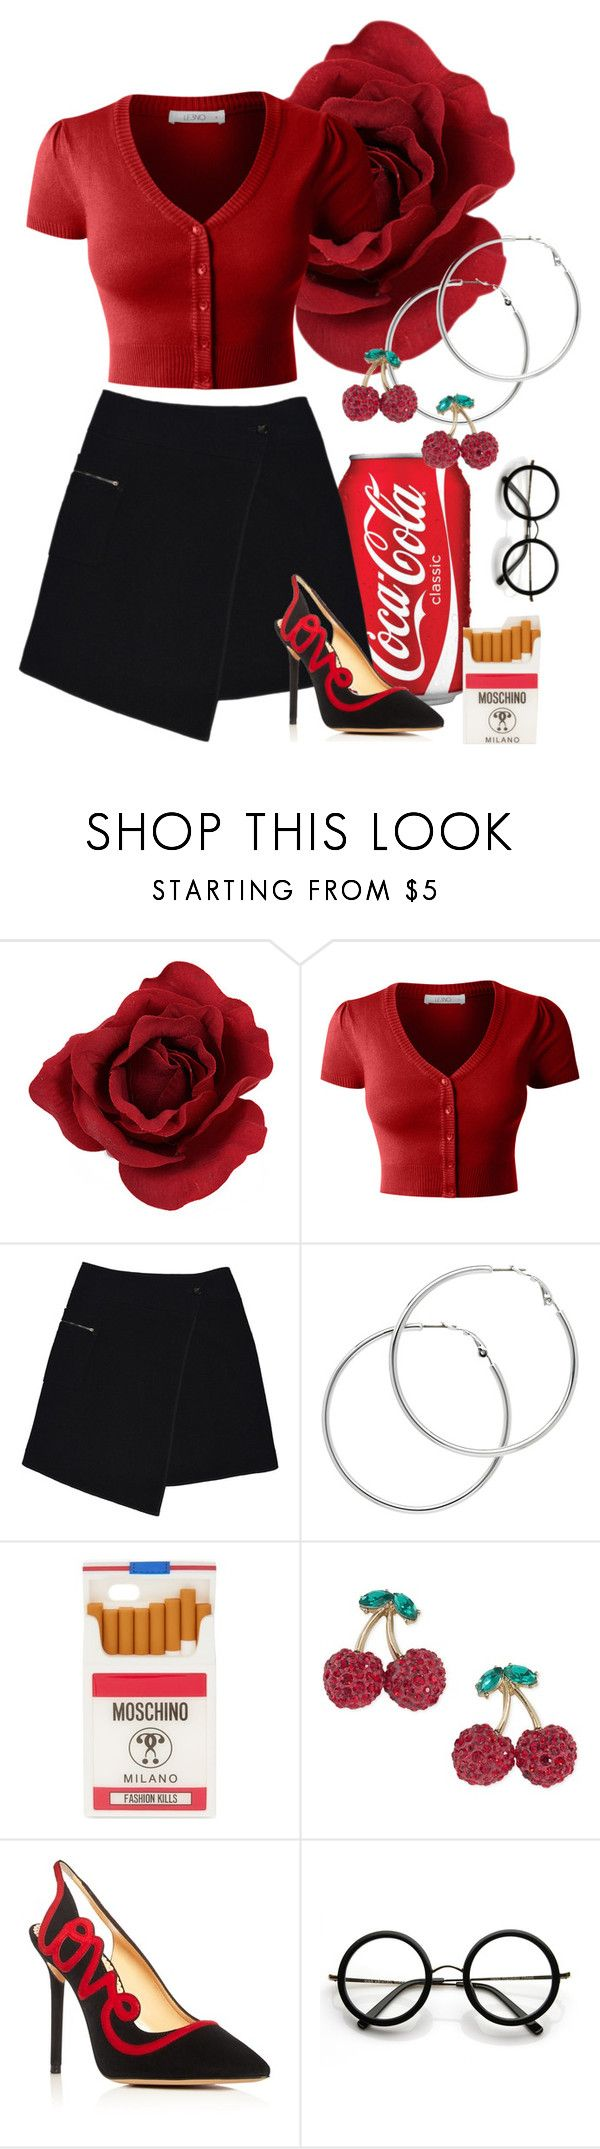 """Untitled #404"" by sarahs884 ❤ liked on Polyvore featuring LE3NO, MARC CAIN, Melissa Odabash, Moschino, ABS by Allen Schwartz, Charlotte Olympia and ZeroUV"